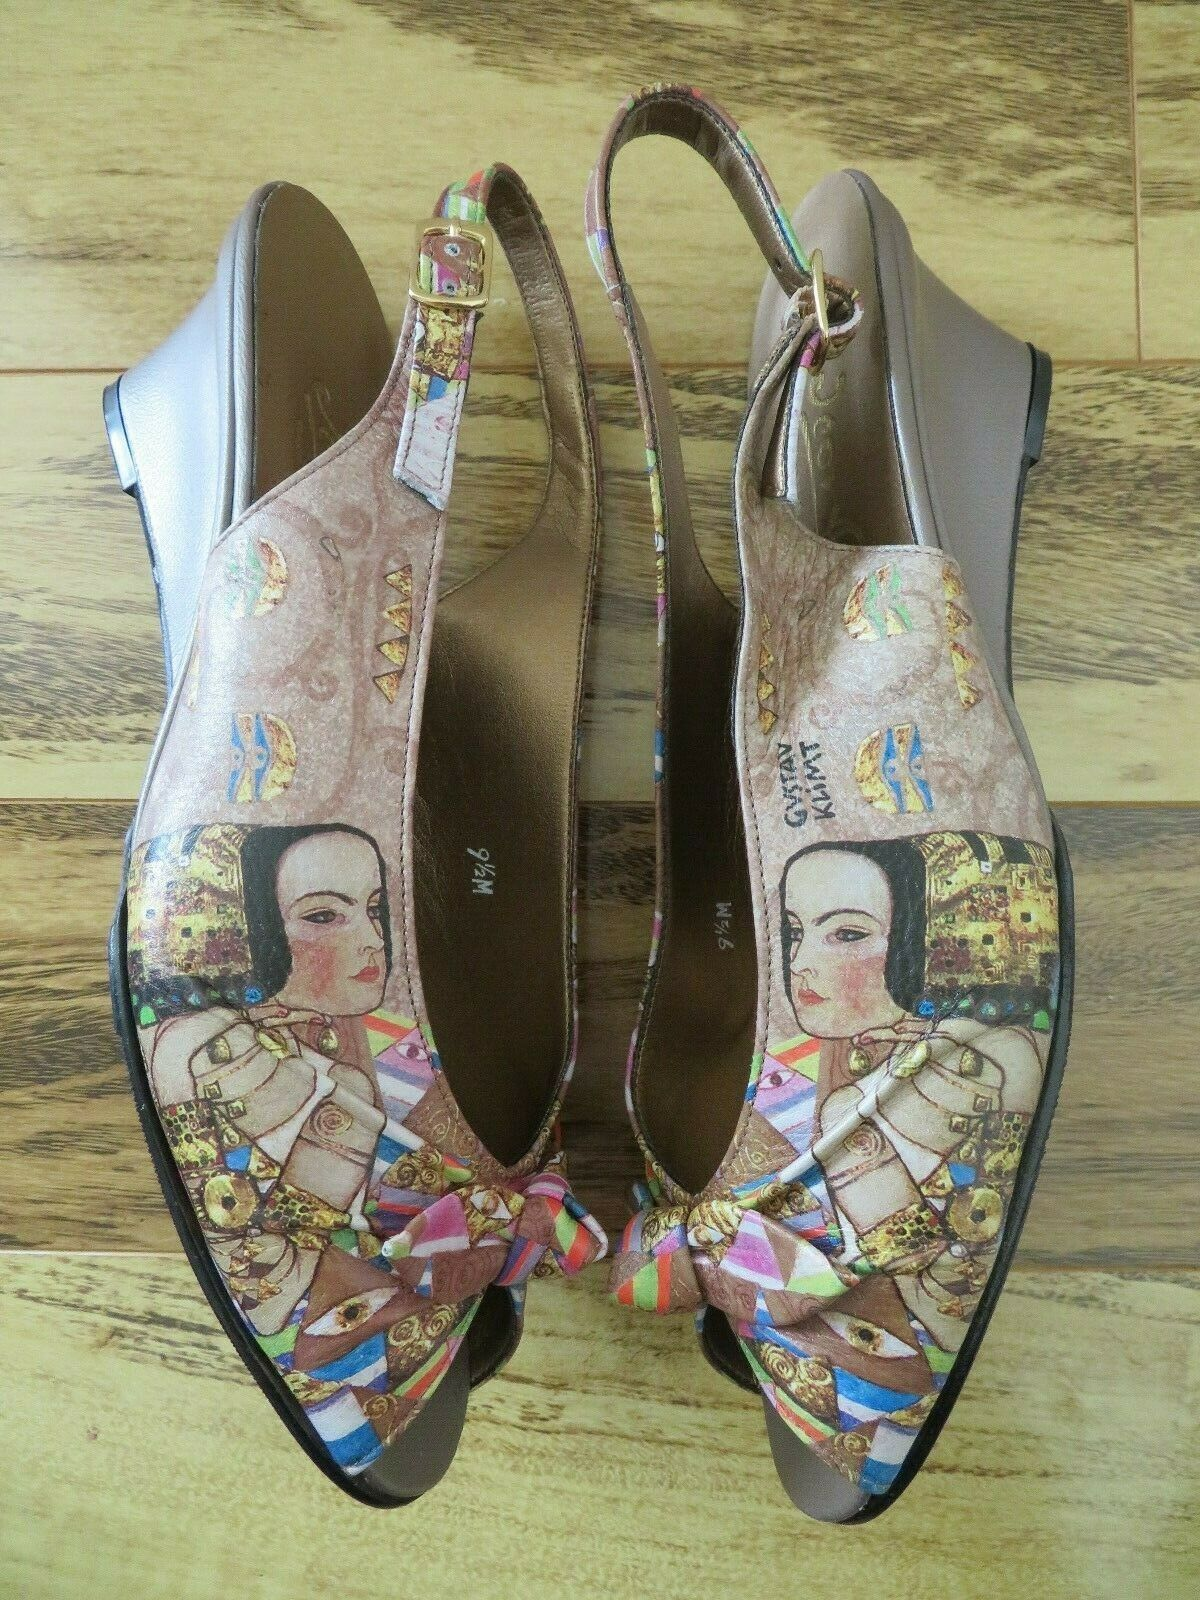 New Boxed ICON Lena Expectations Sling Back Wedge shoes Peep Toes 9.5 M Klimt